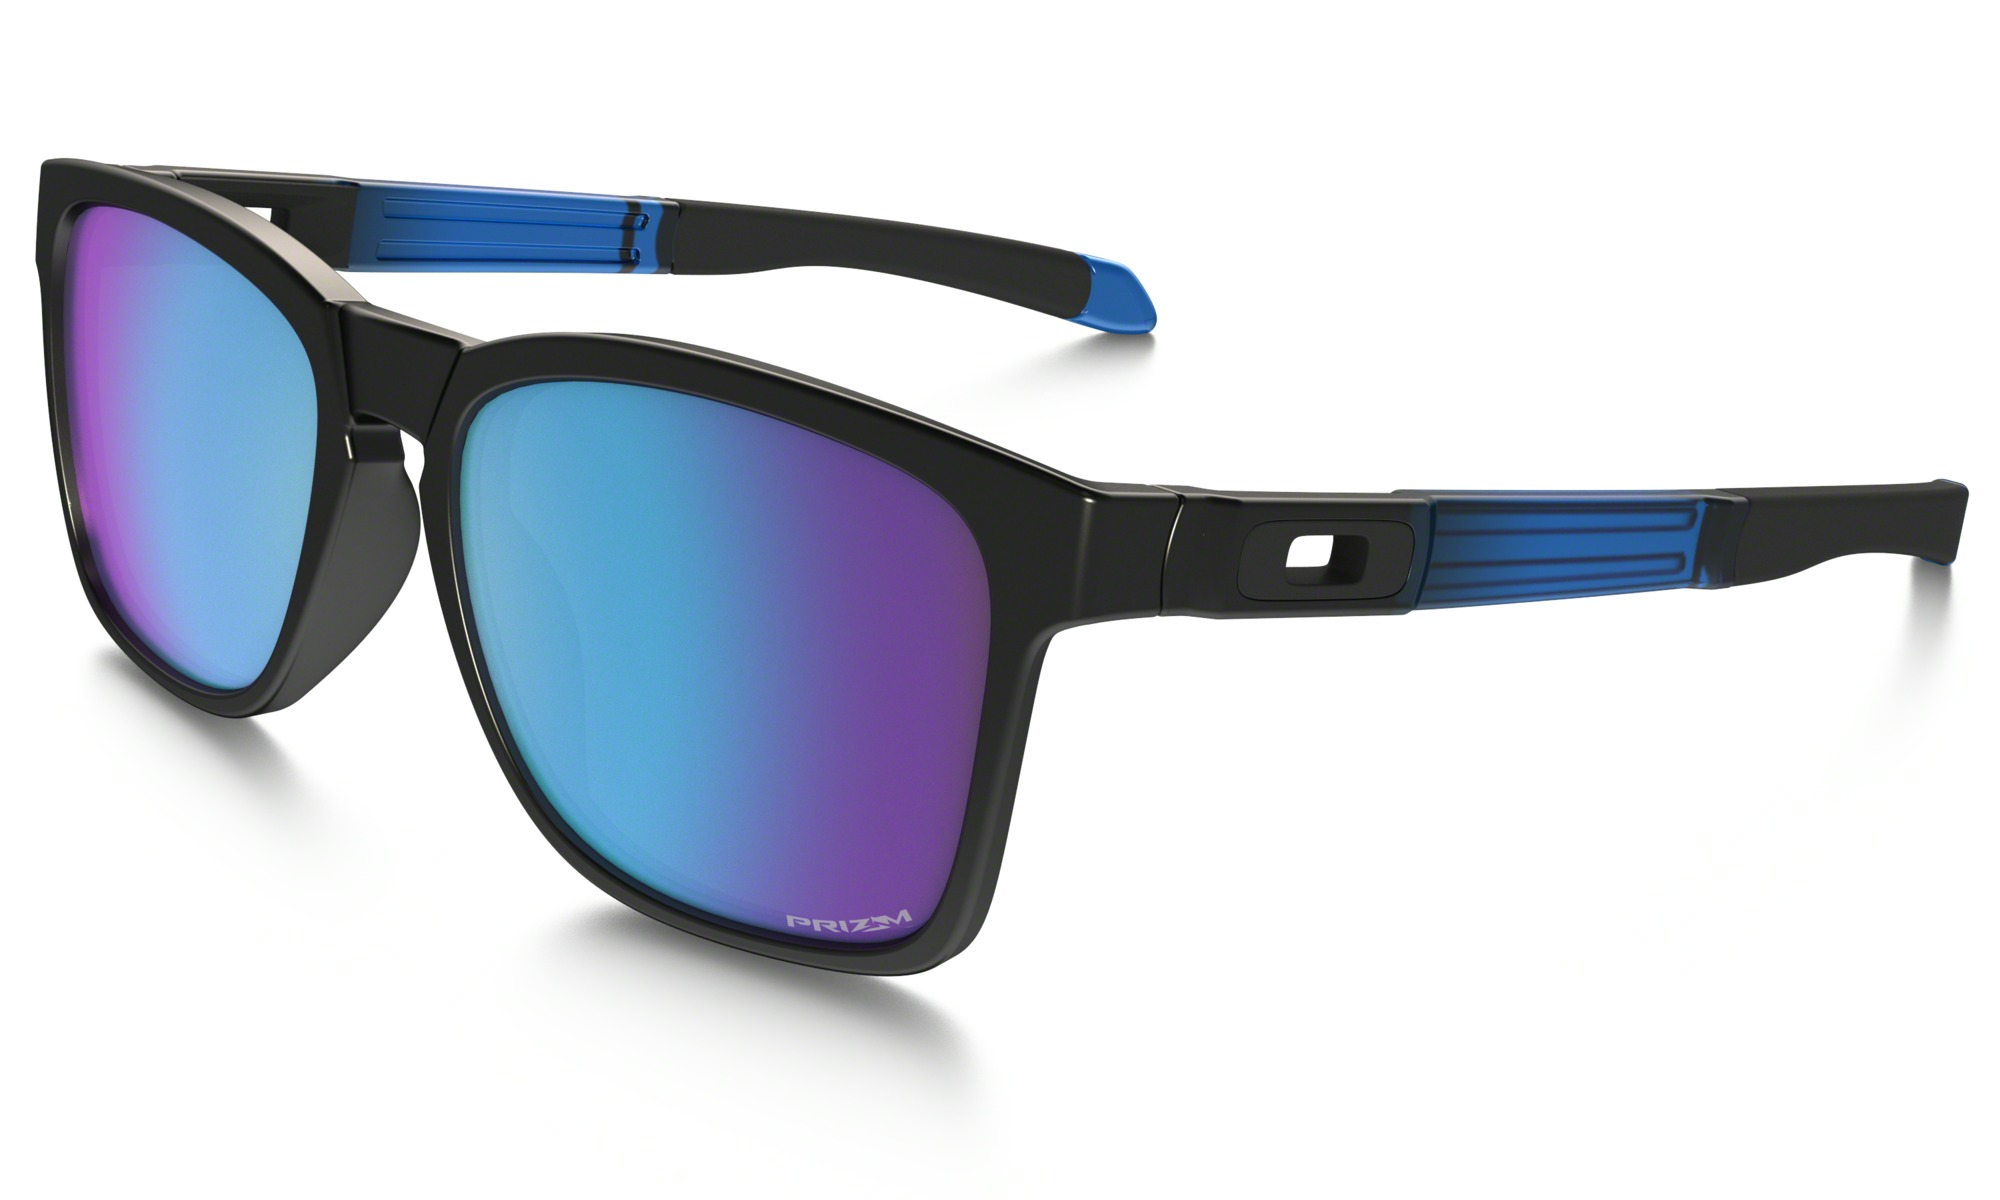 b023c0bb9b Introducing the Oakley Sapphire Fade Collection